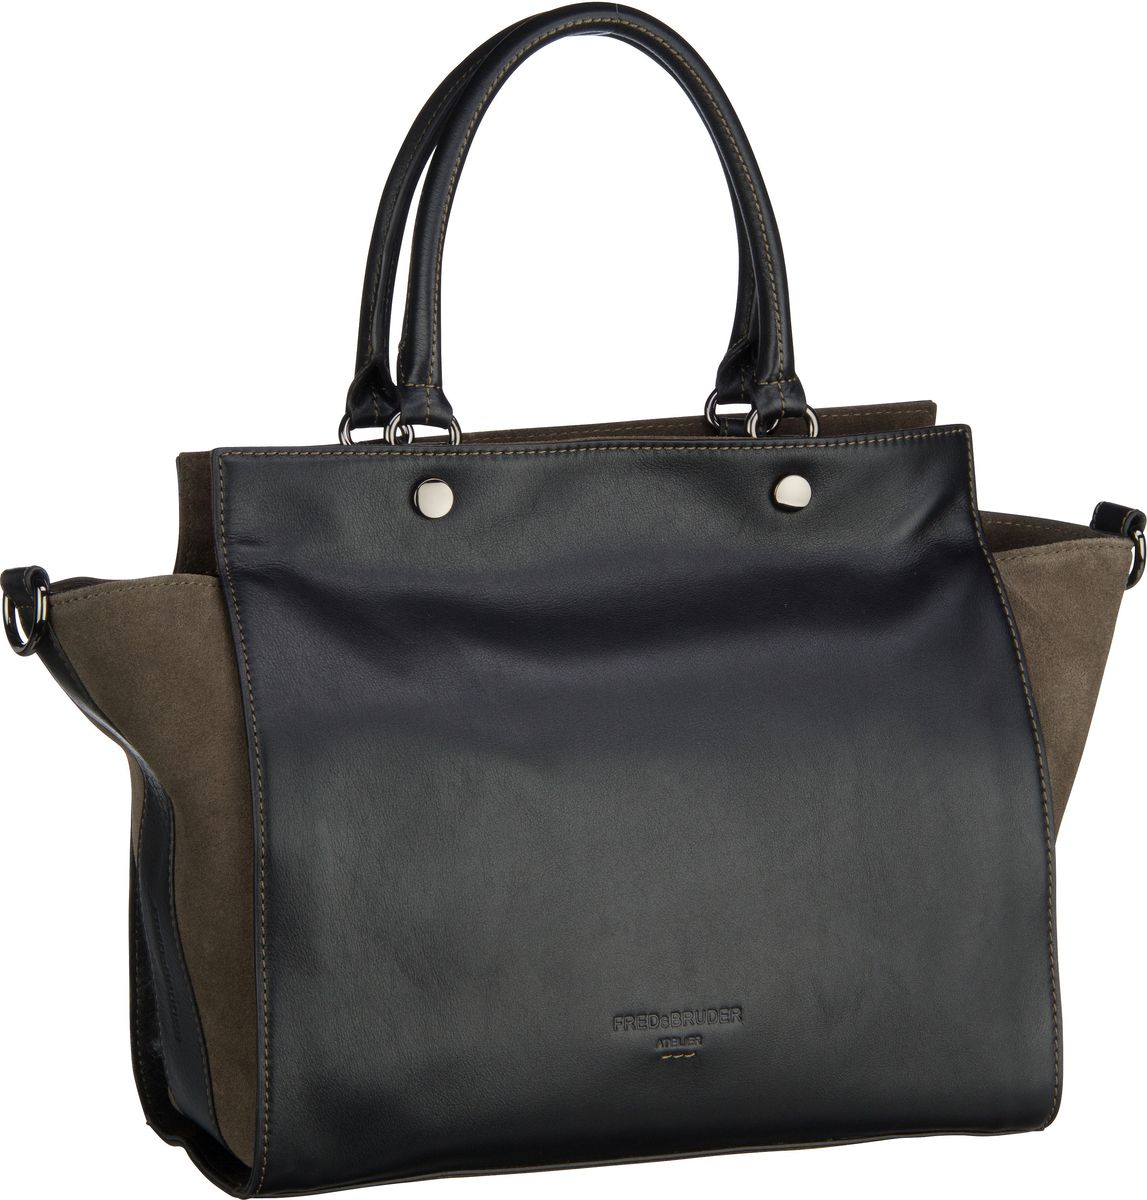 Handtasche Dada Bag Black